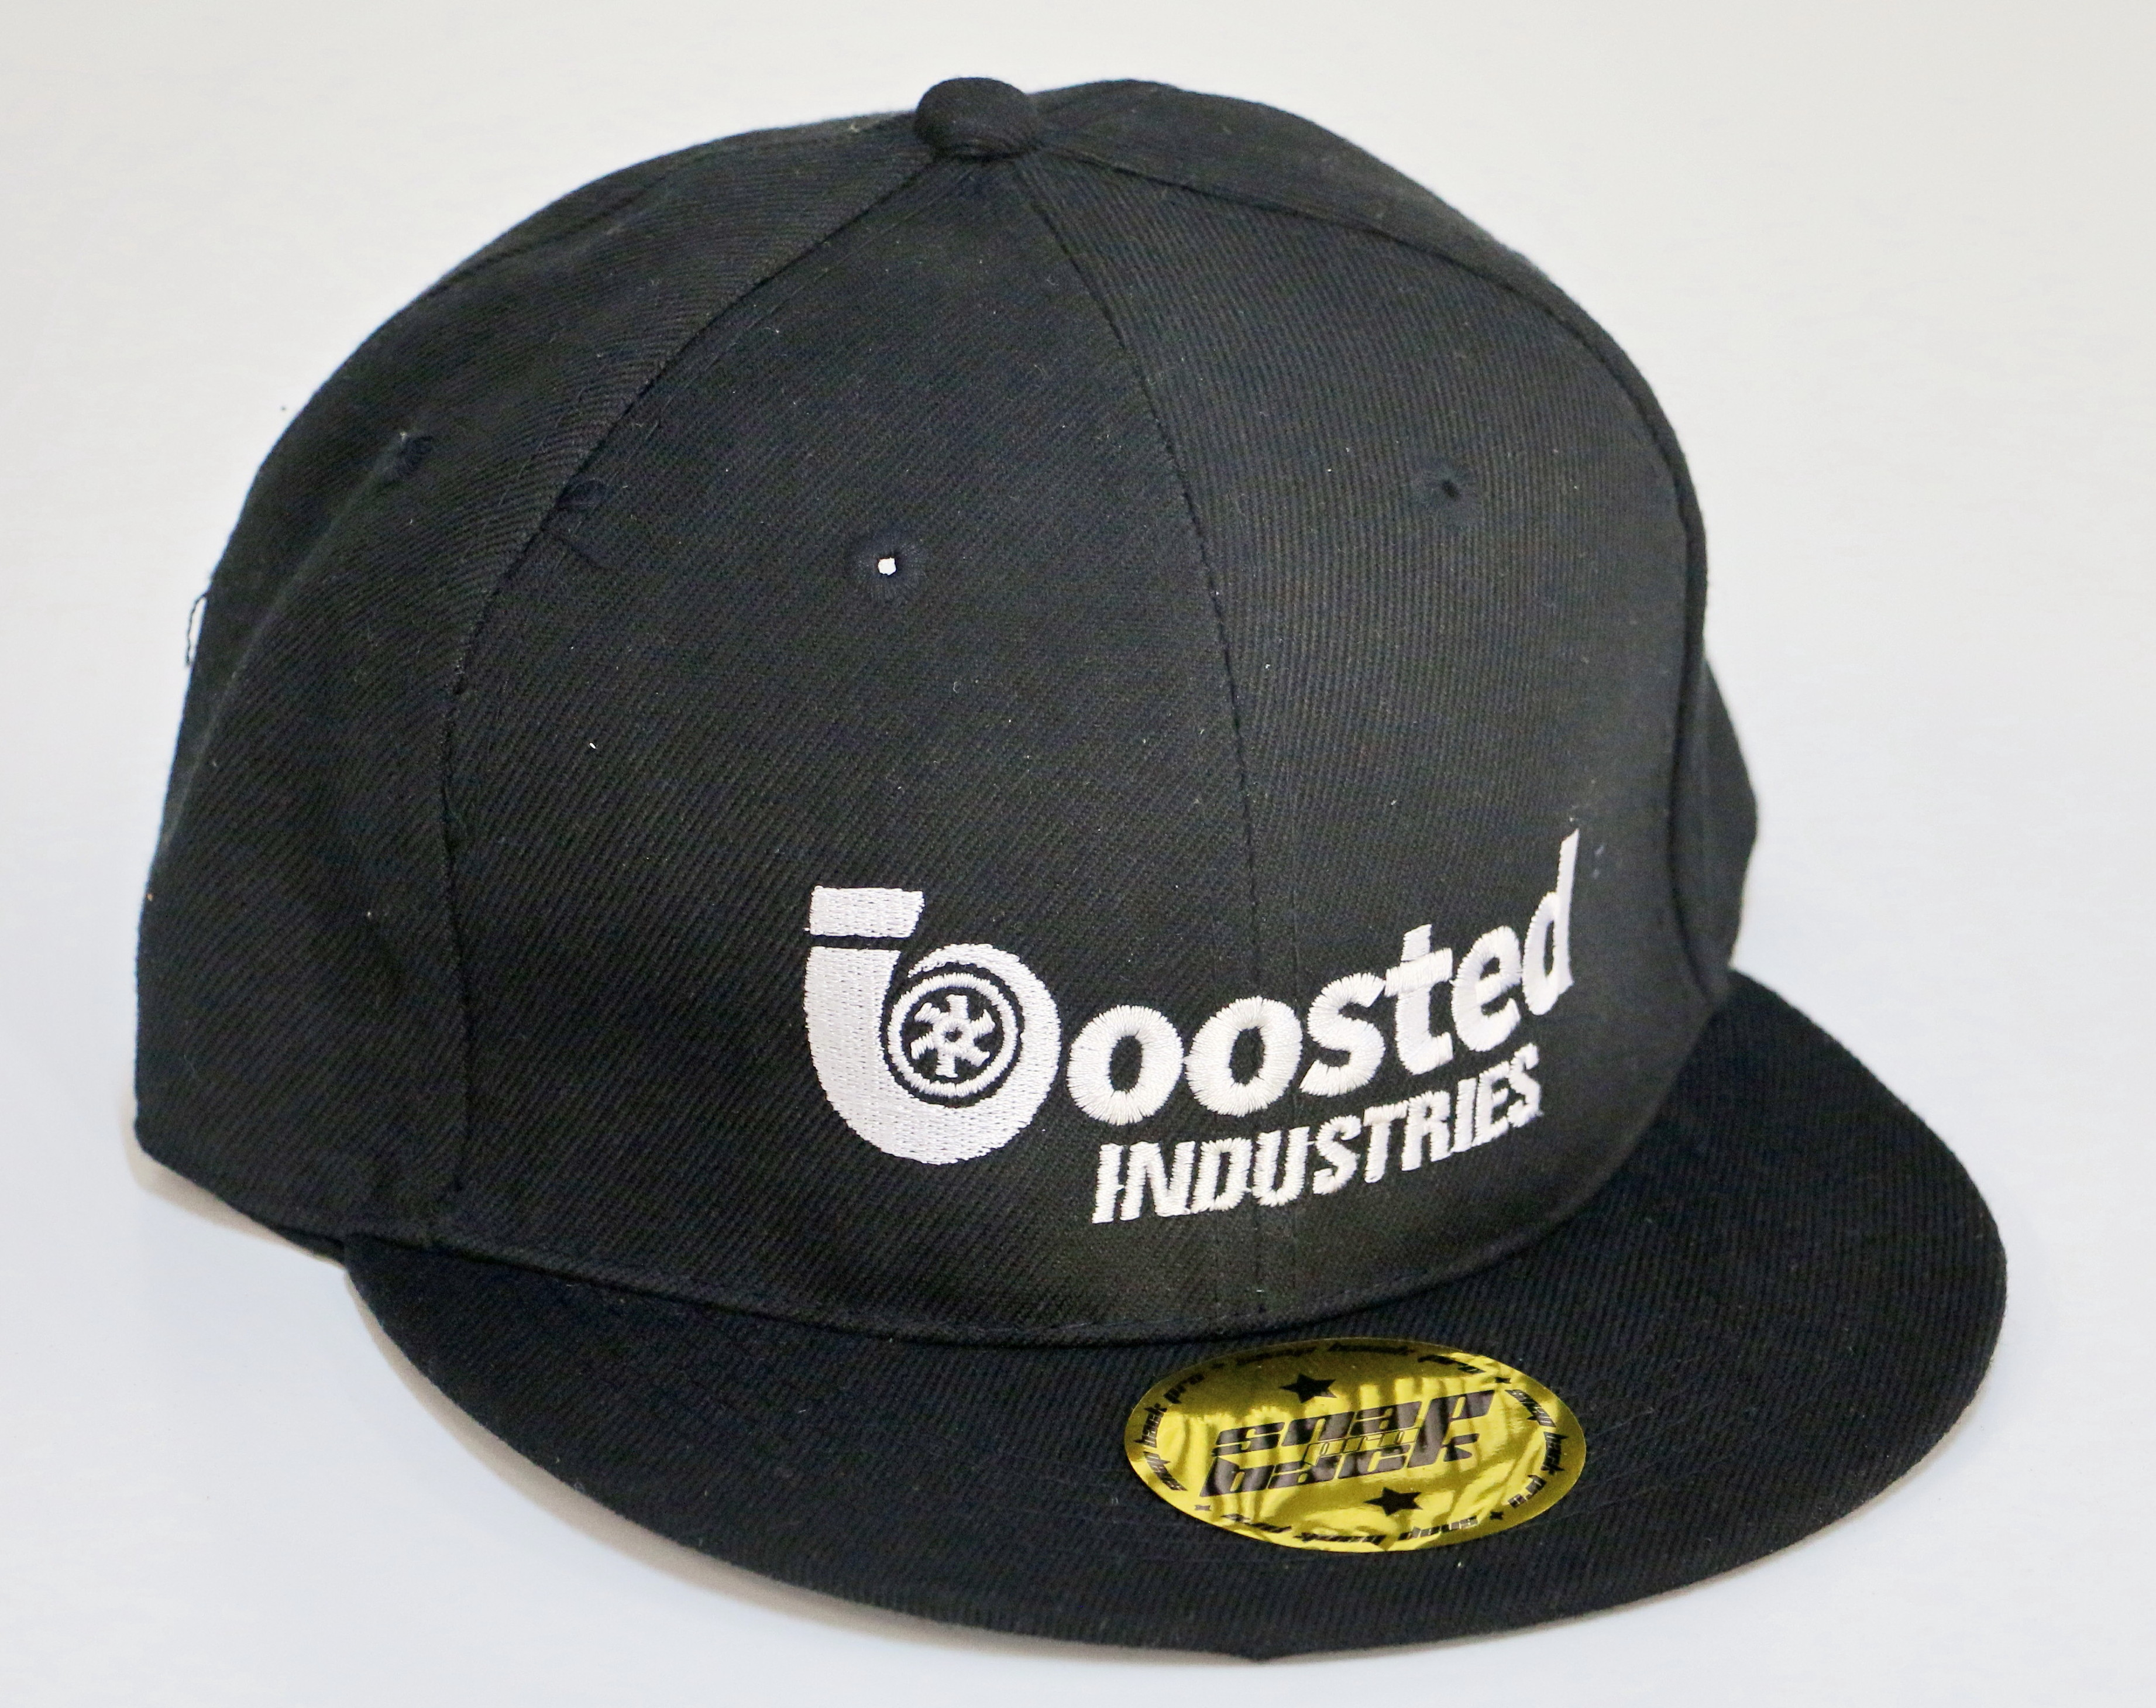 boosted-hat-white-snap_1.jpg